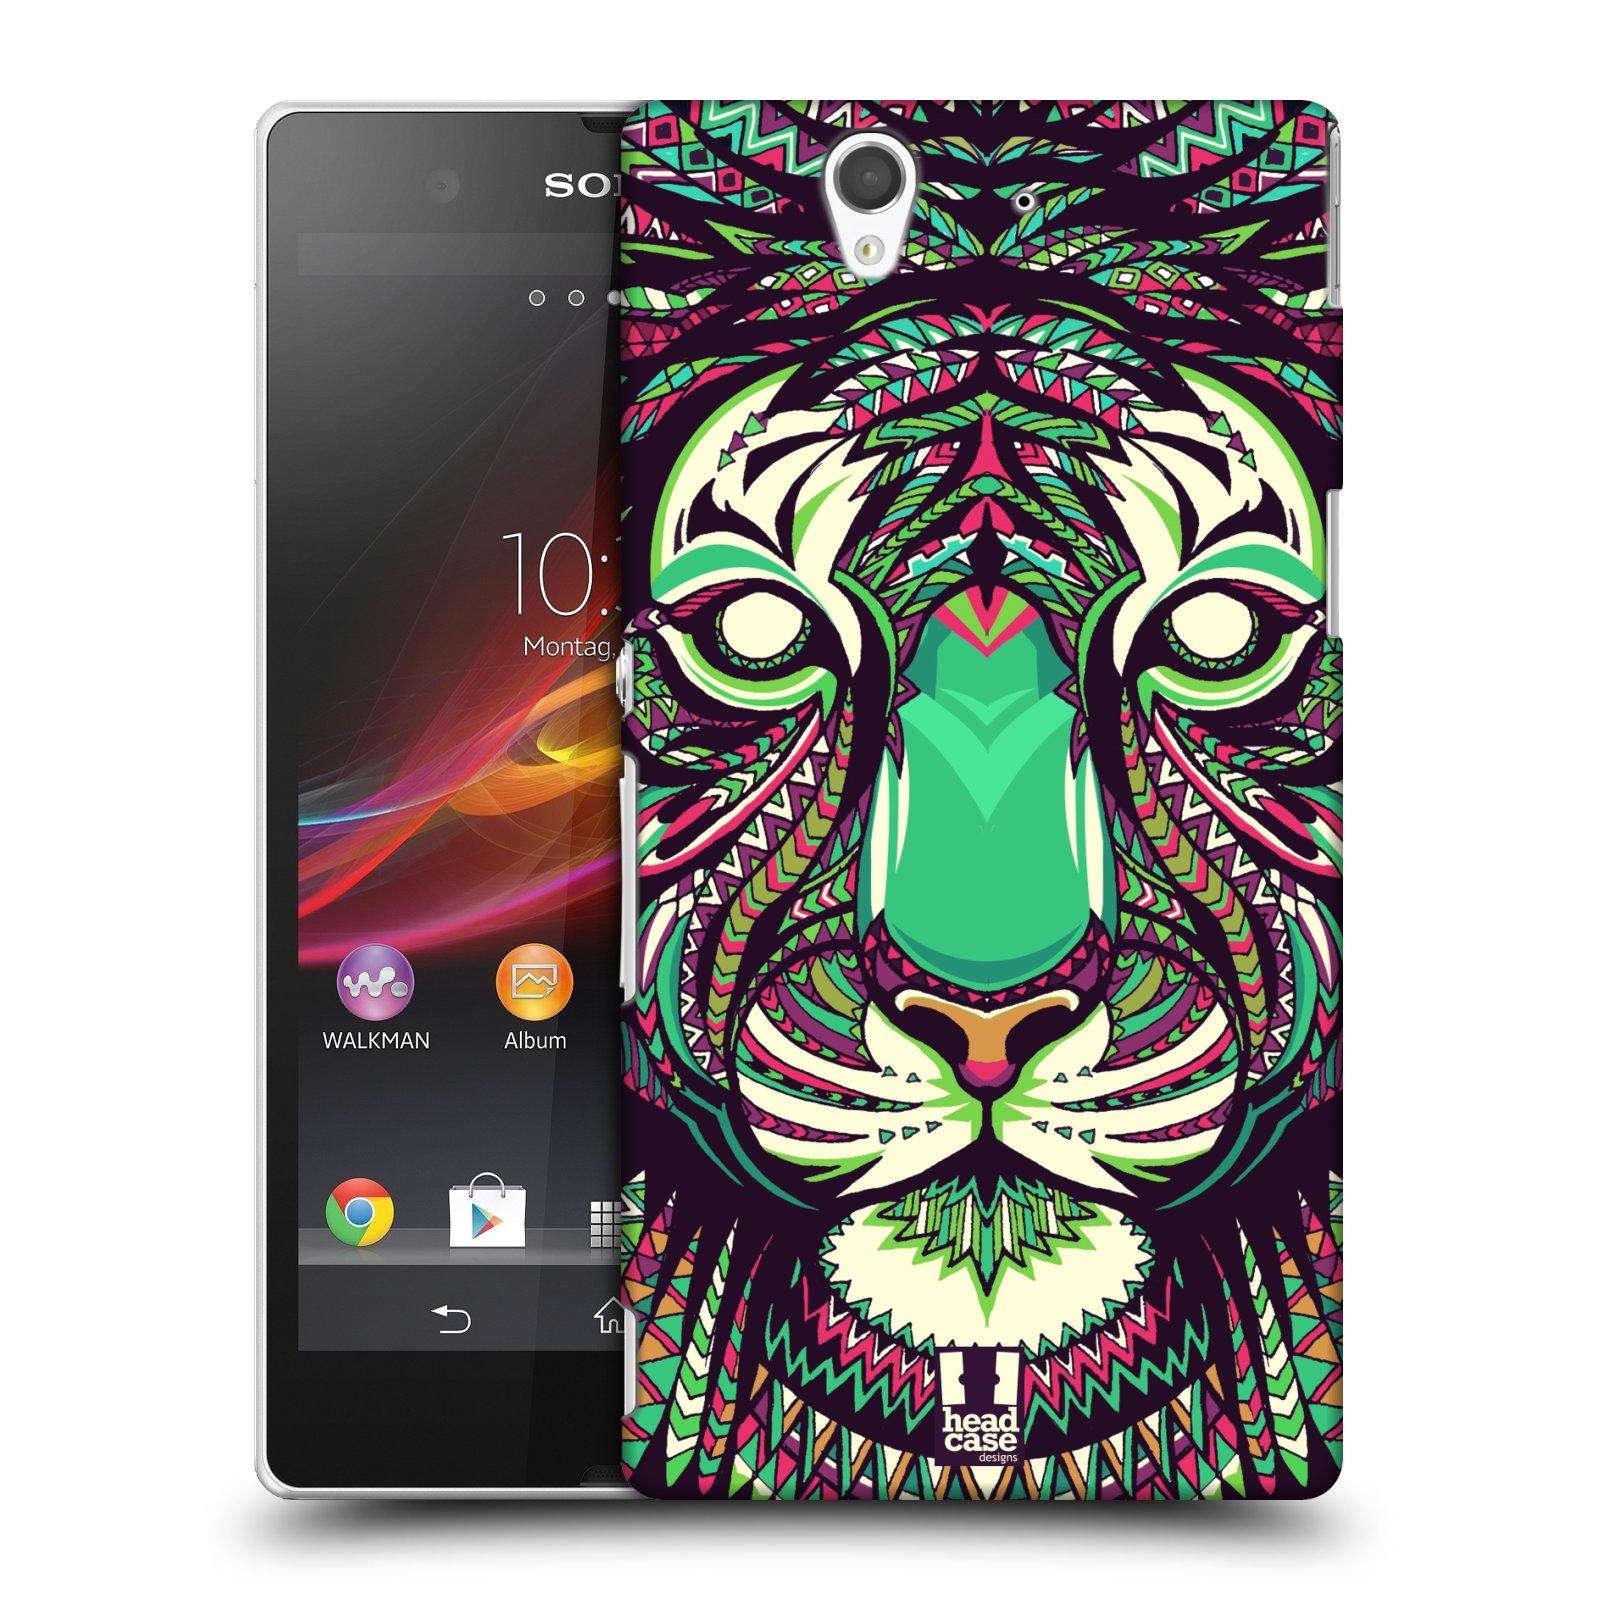 HEAD CASE DESIGNS ANIMAL FACES SERIES 2 CASE COVER FOR SONY XPERIA Z C6603